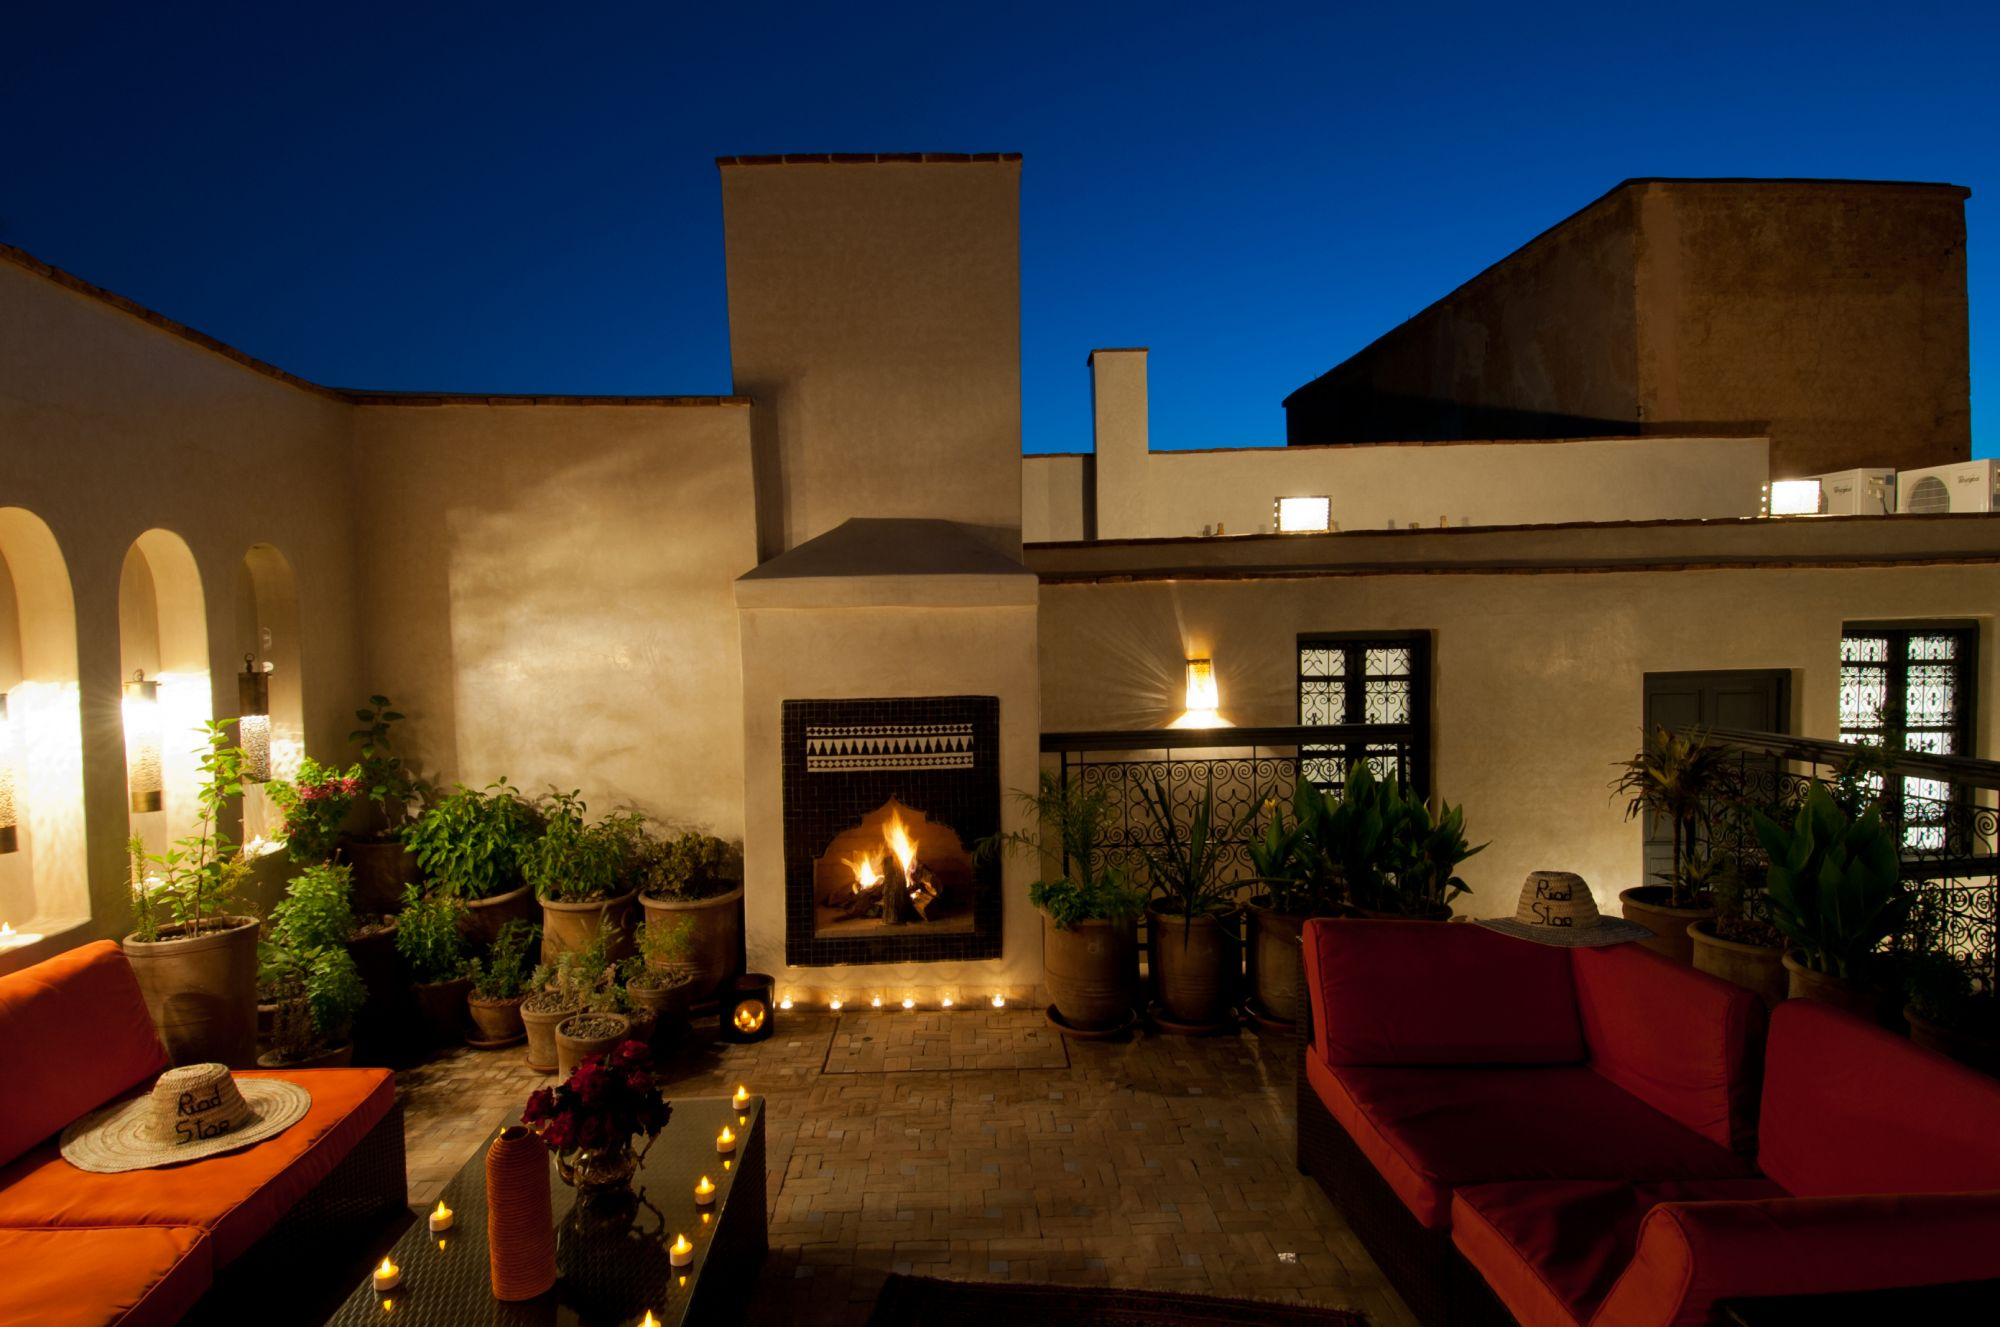 Roof Terrace by night at Riad Star (71)